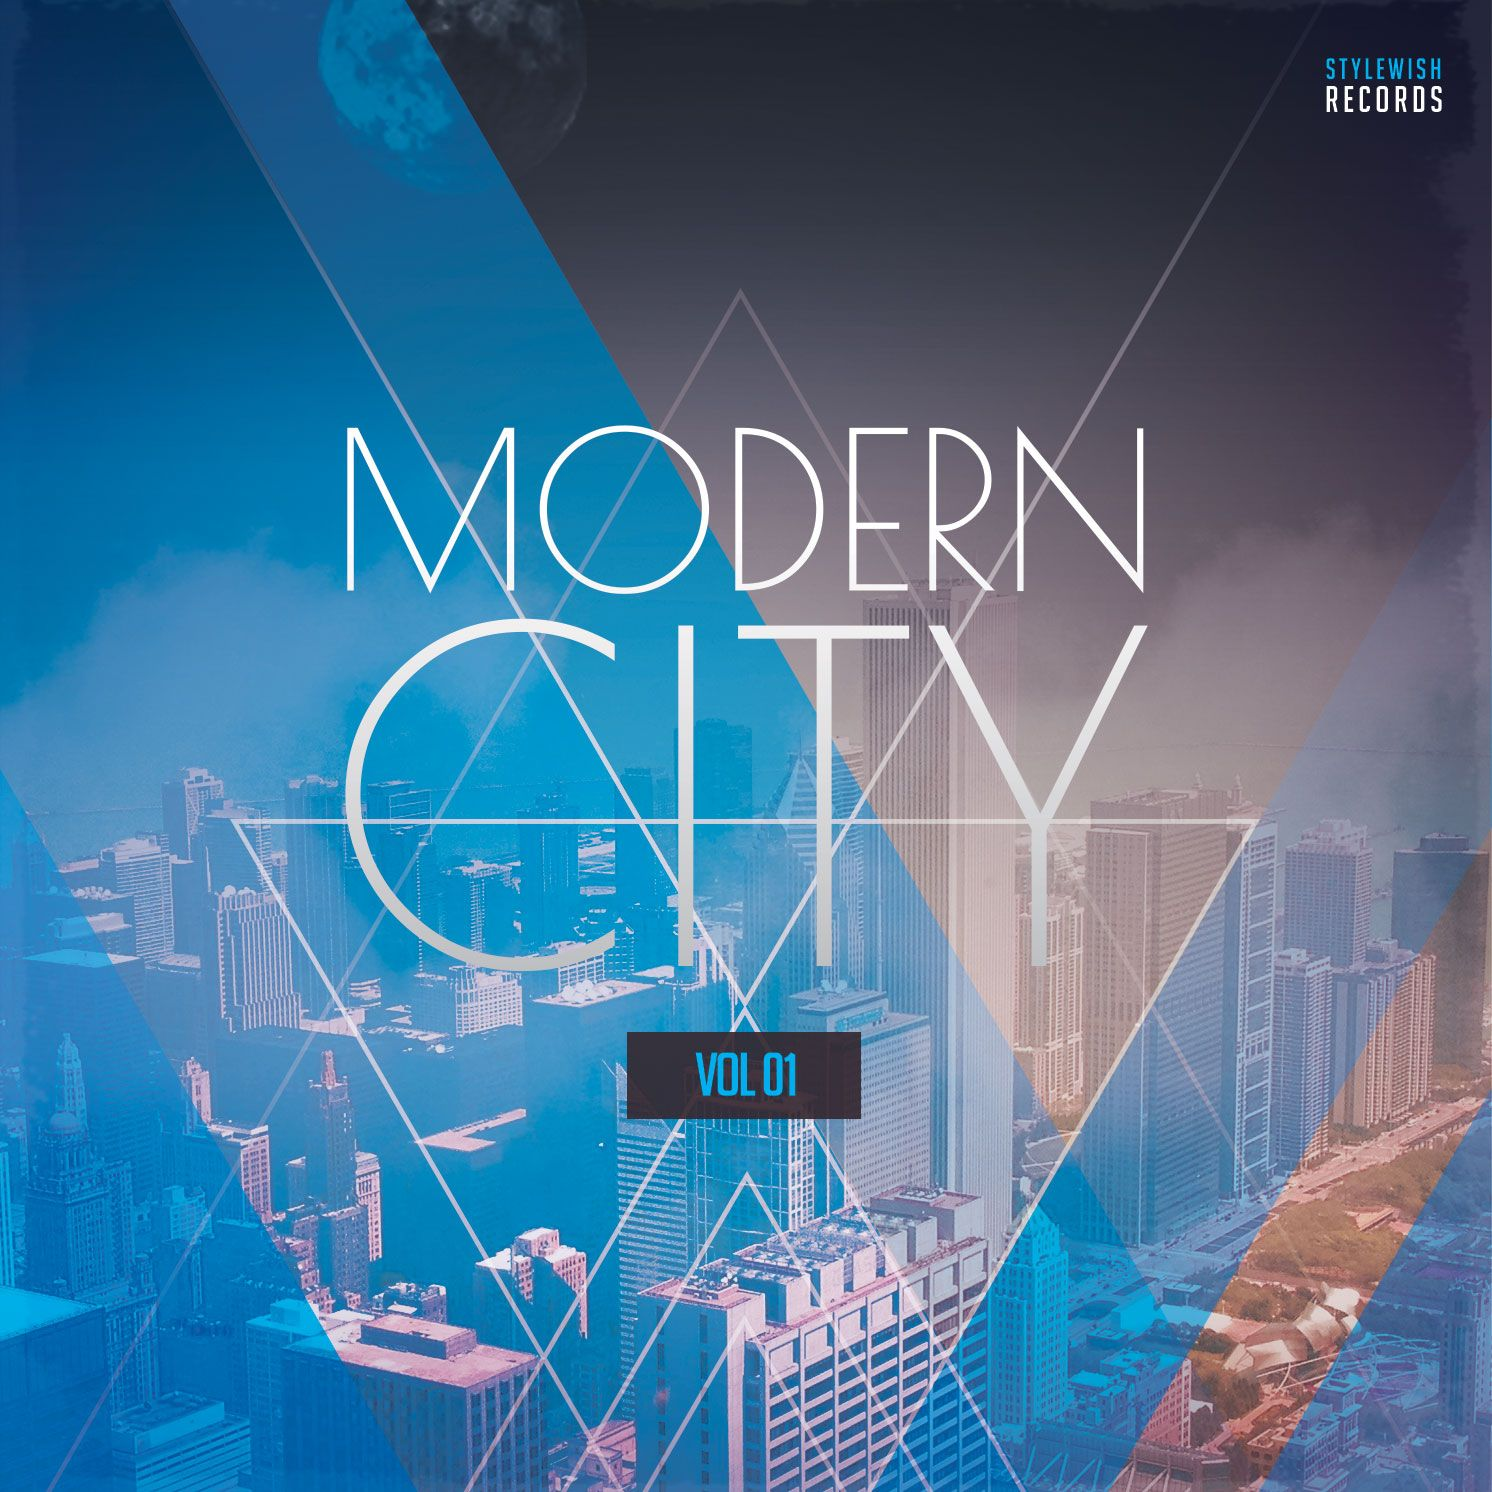 Modern City Cd Cover Artwork By Stylewish Cd Jackets Cd Cover